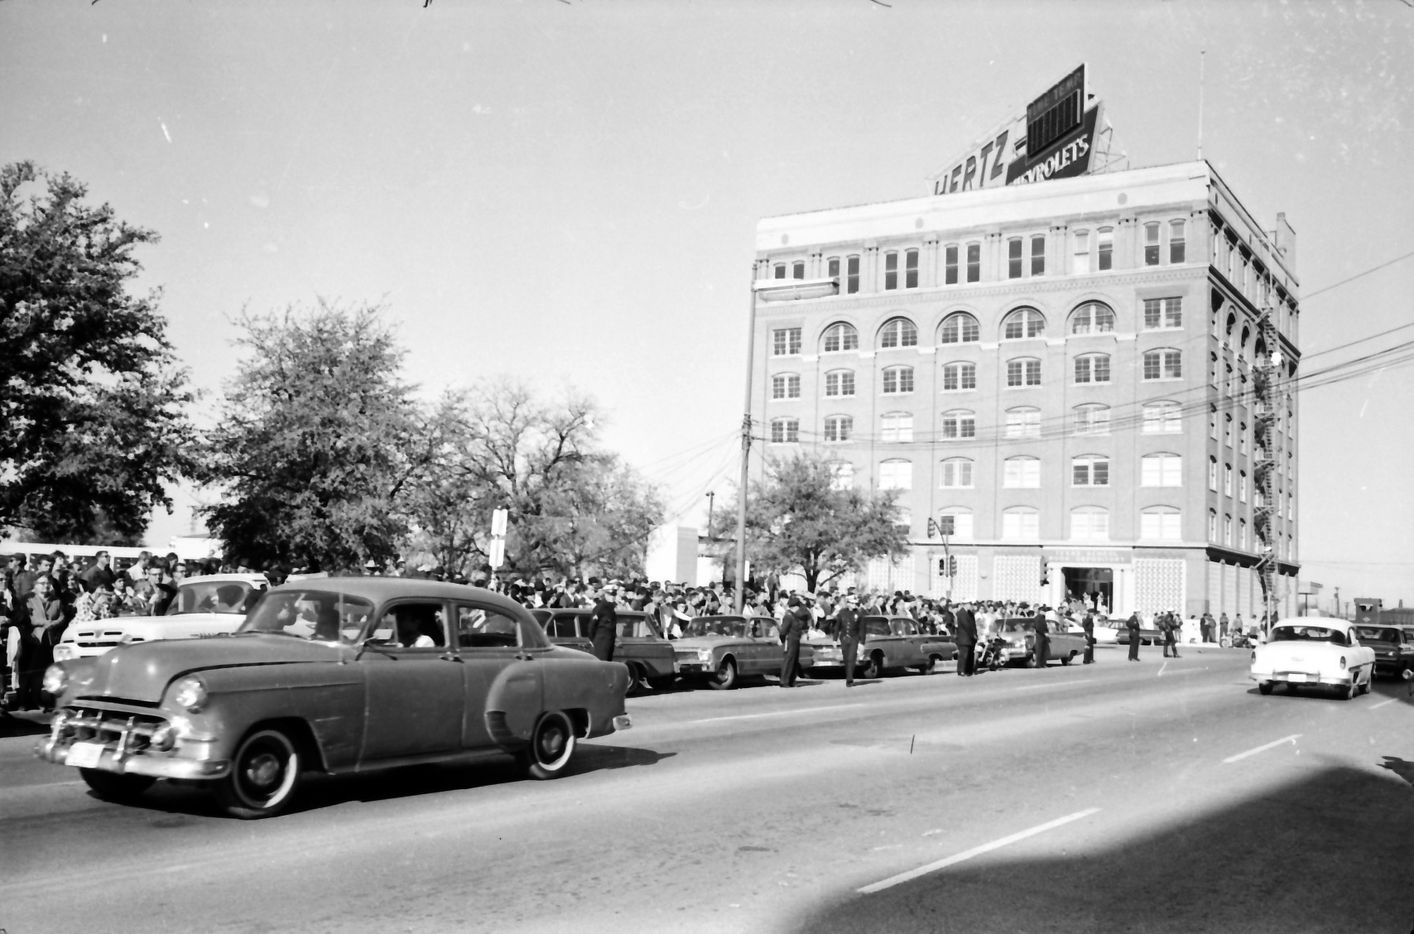 November 23, 1963 - Crowds along Houston Street waiting to see Lee Harvey Oswald transferred from city jail to county jail